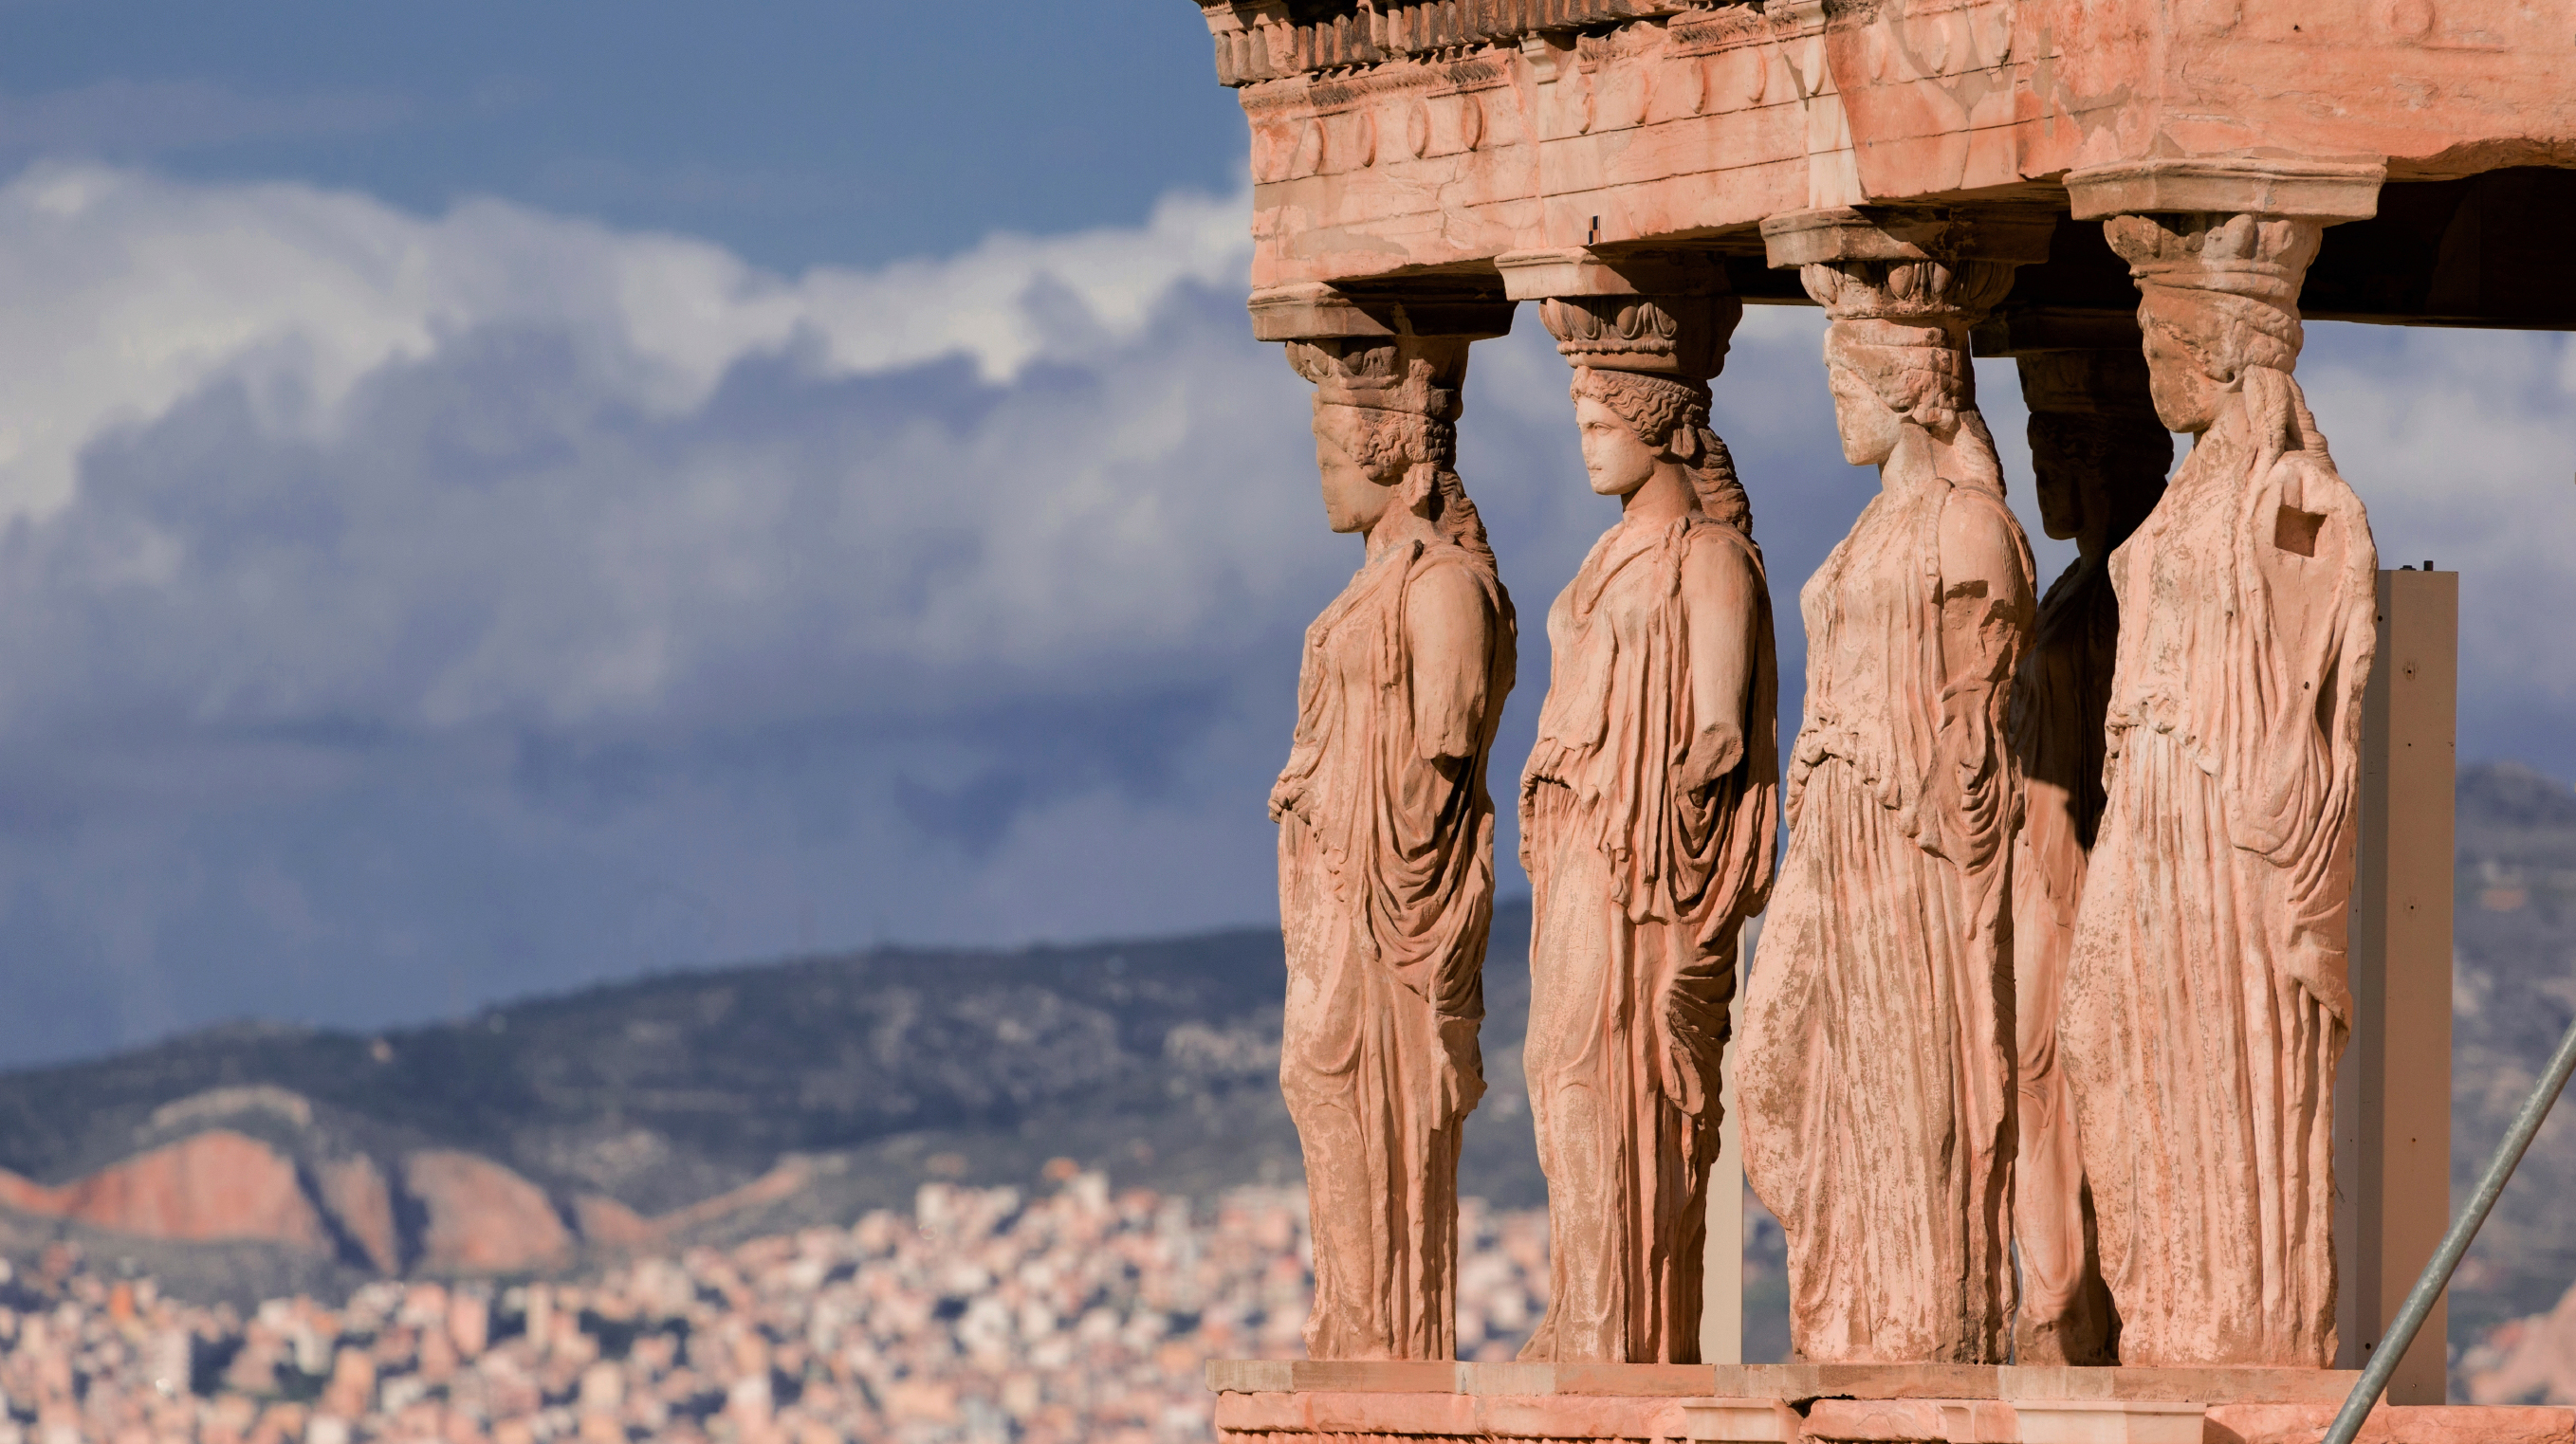 iStock_000081871677_Large.jpg www.istockphoto.com:photo:erechtheum-at-the-acropolis-gm502382566-81871677_st=609007f